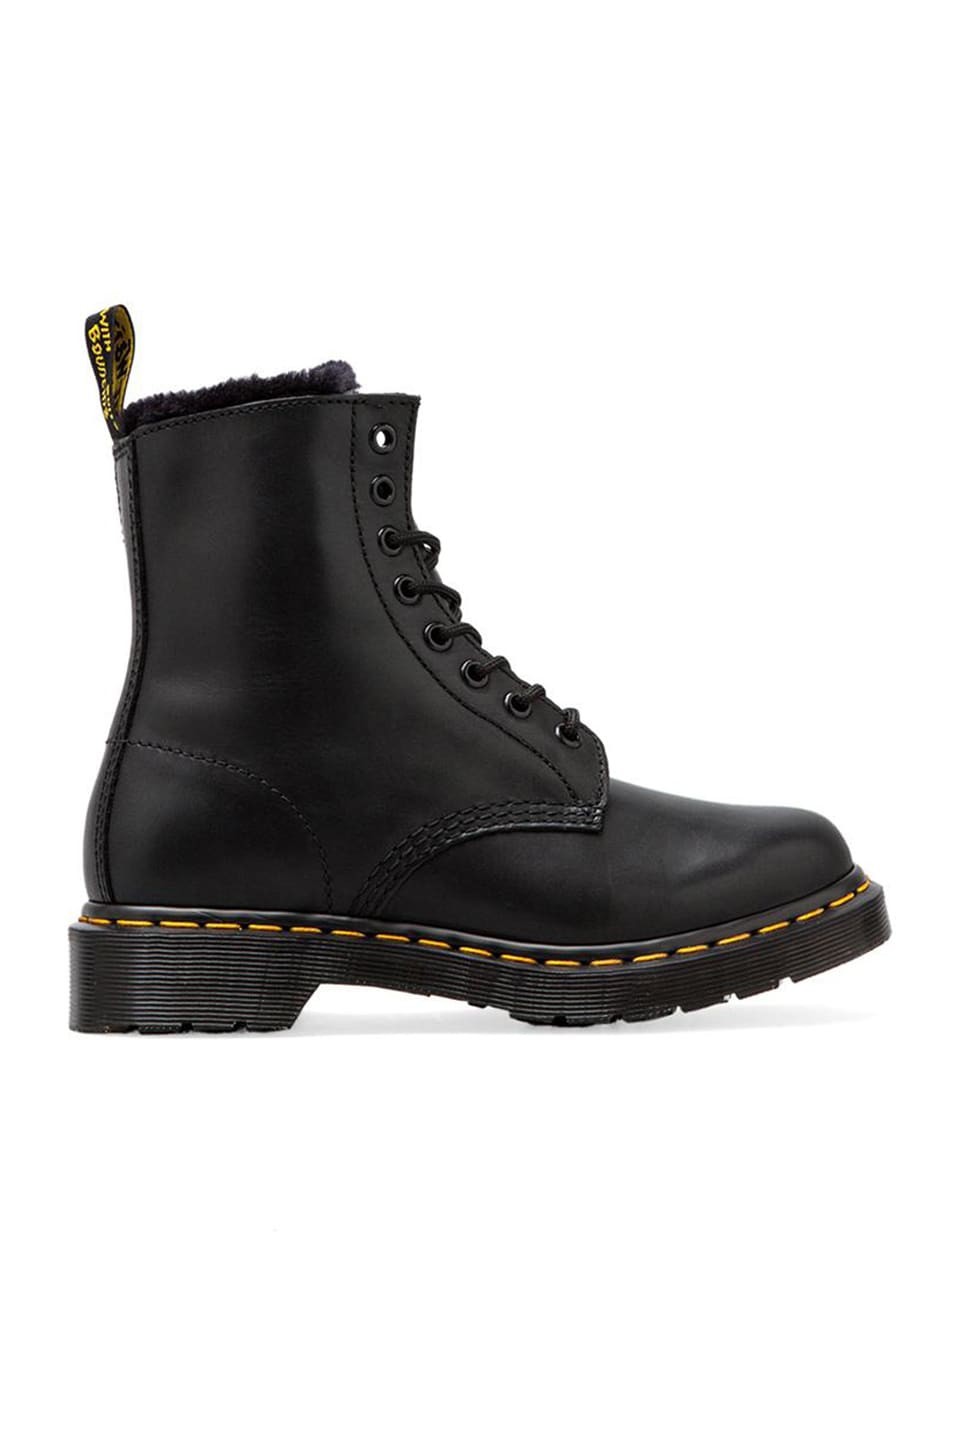 Dr. Martens Serena 8 Eye Boot with Faux Fur Liner in Black